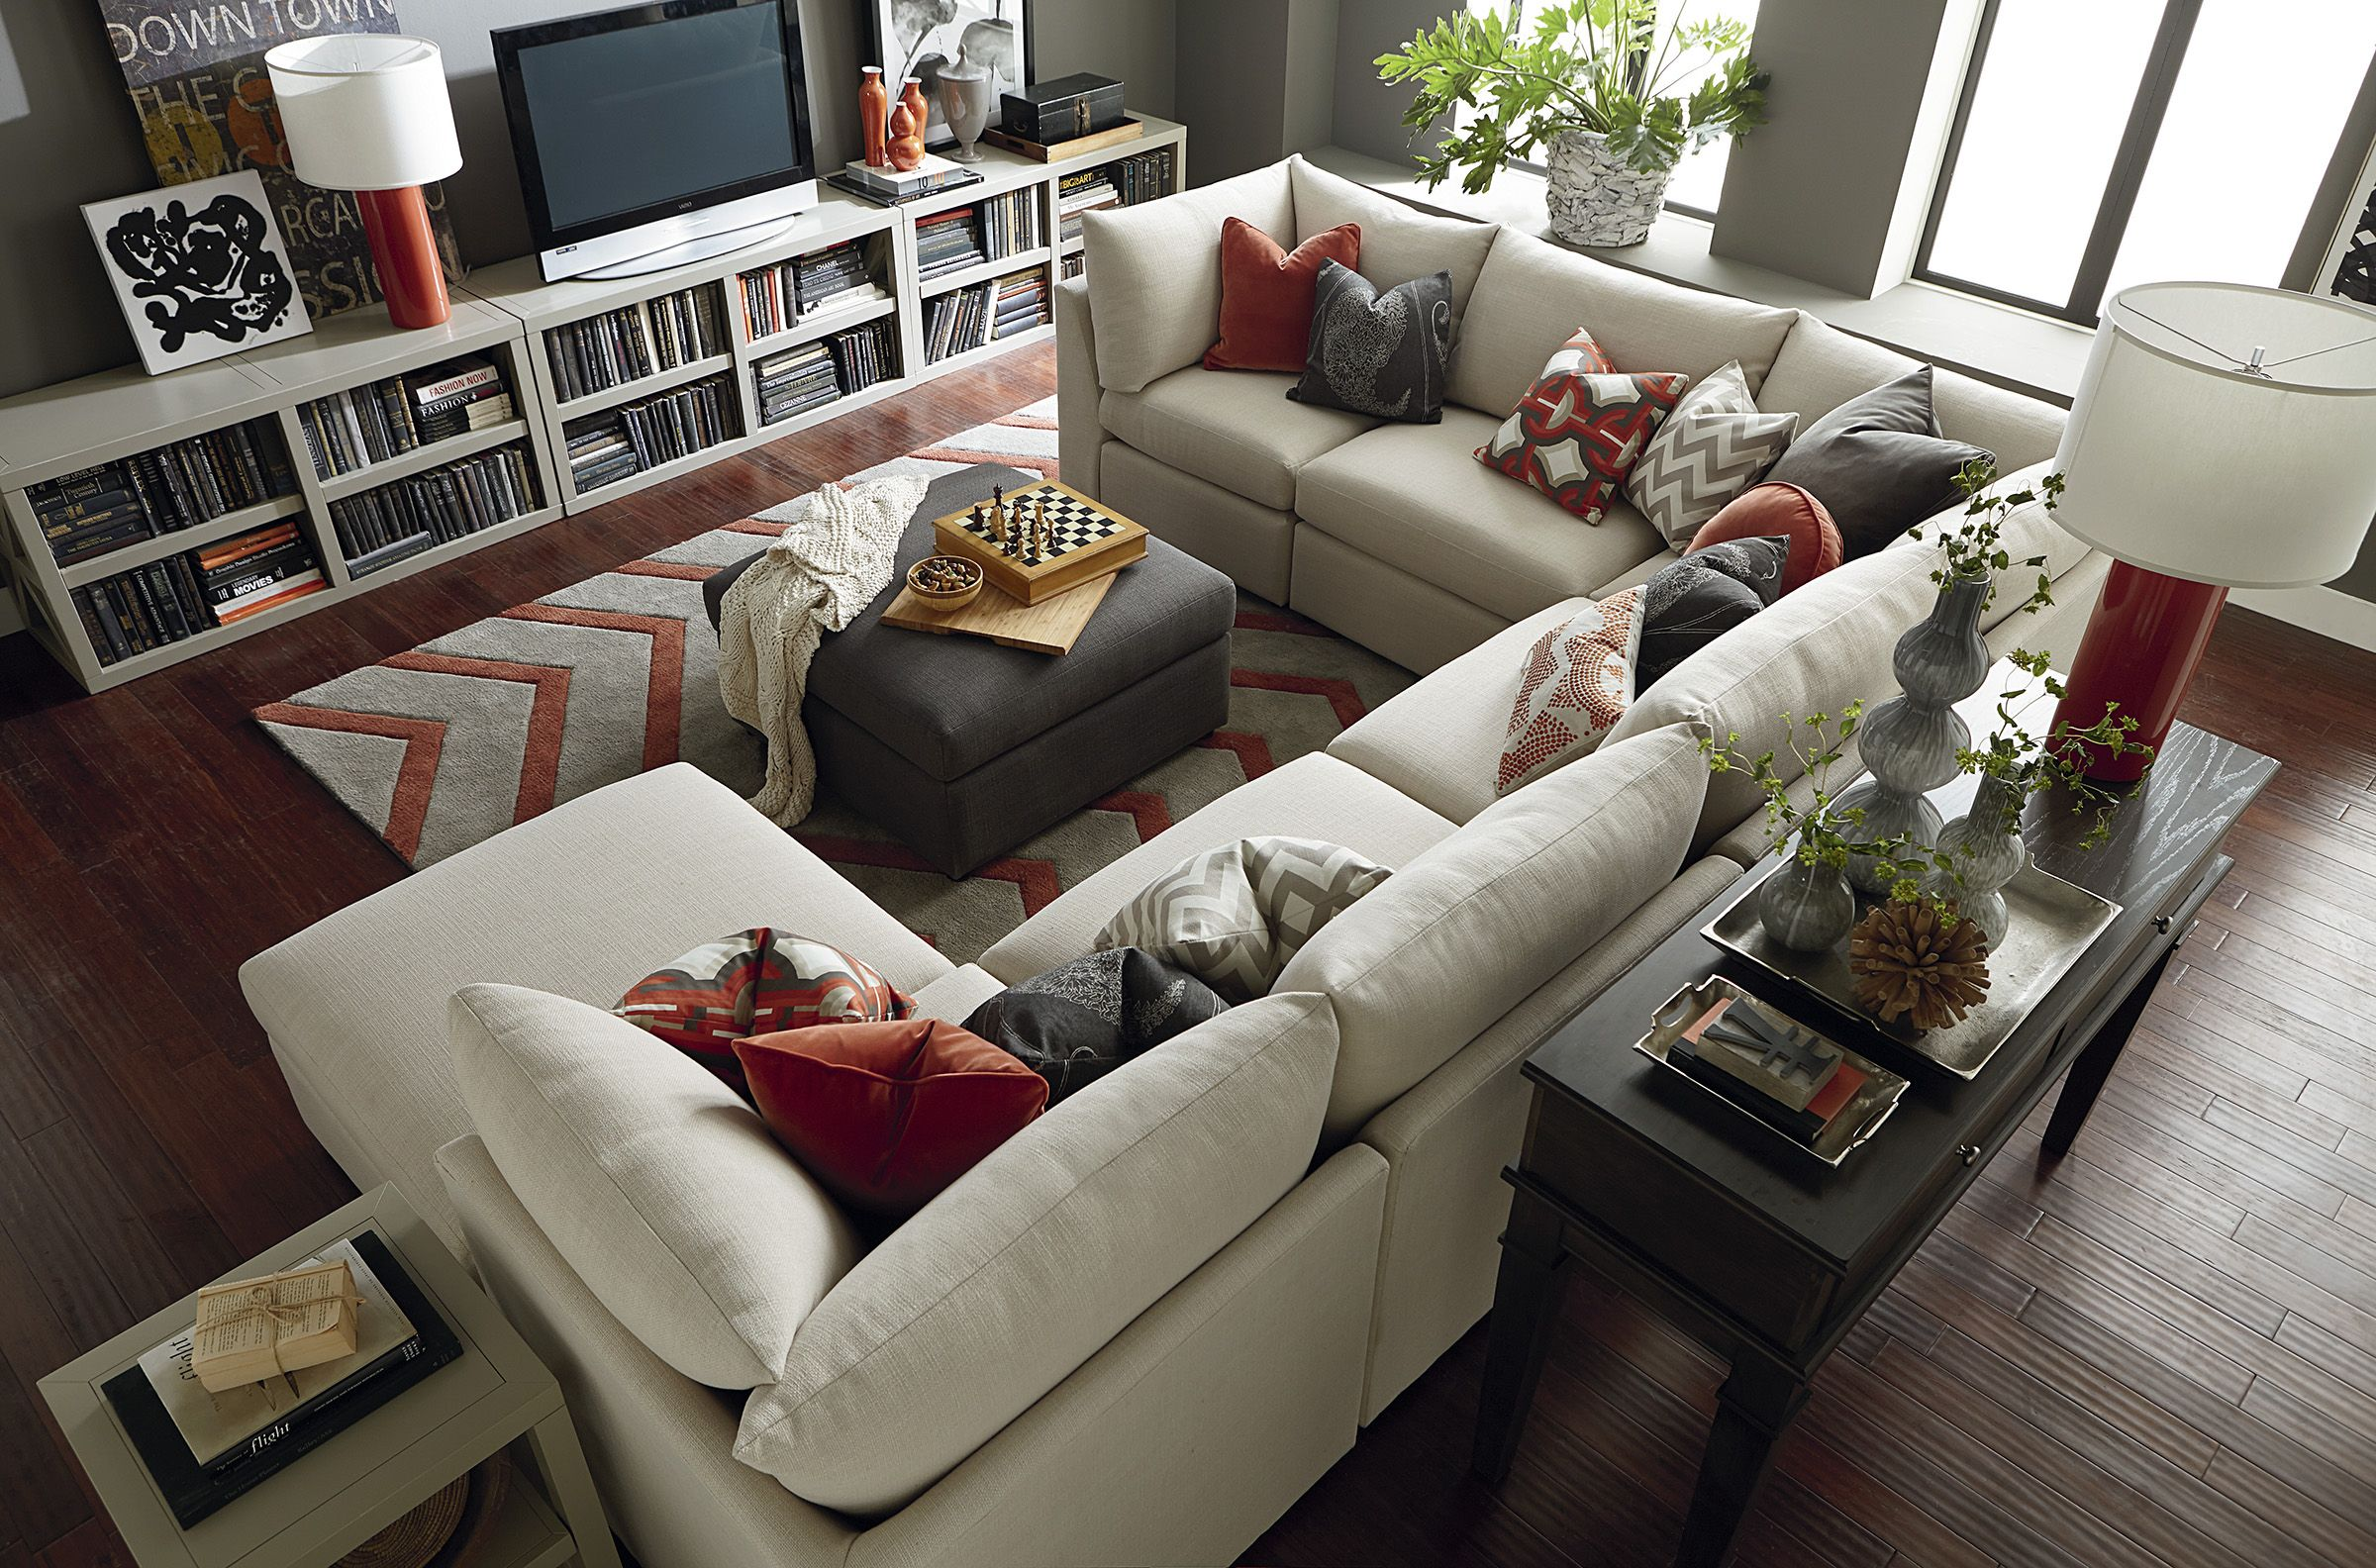 Customize Your Sectional Sofa Arhaus Brentwood Leather Original Beckham U Shaped Home Ideas Pinterest By Bassett Furniture With Over 1 000 Fabrics